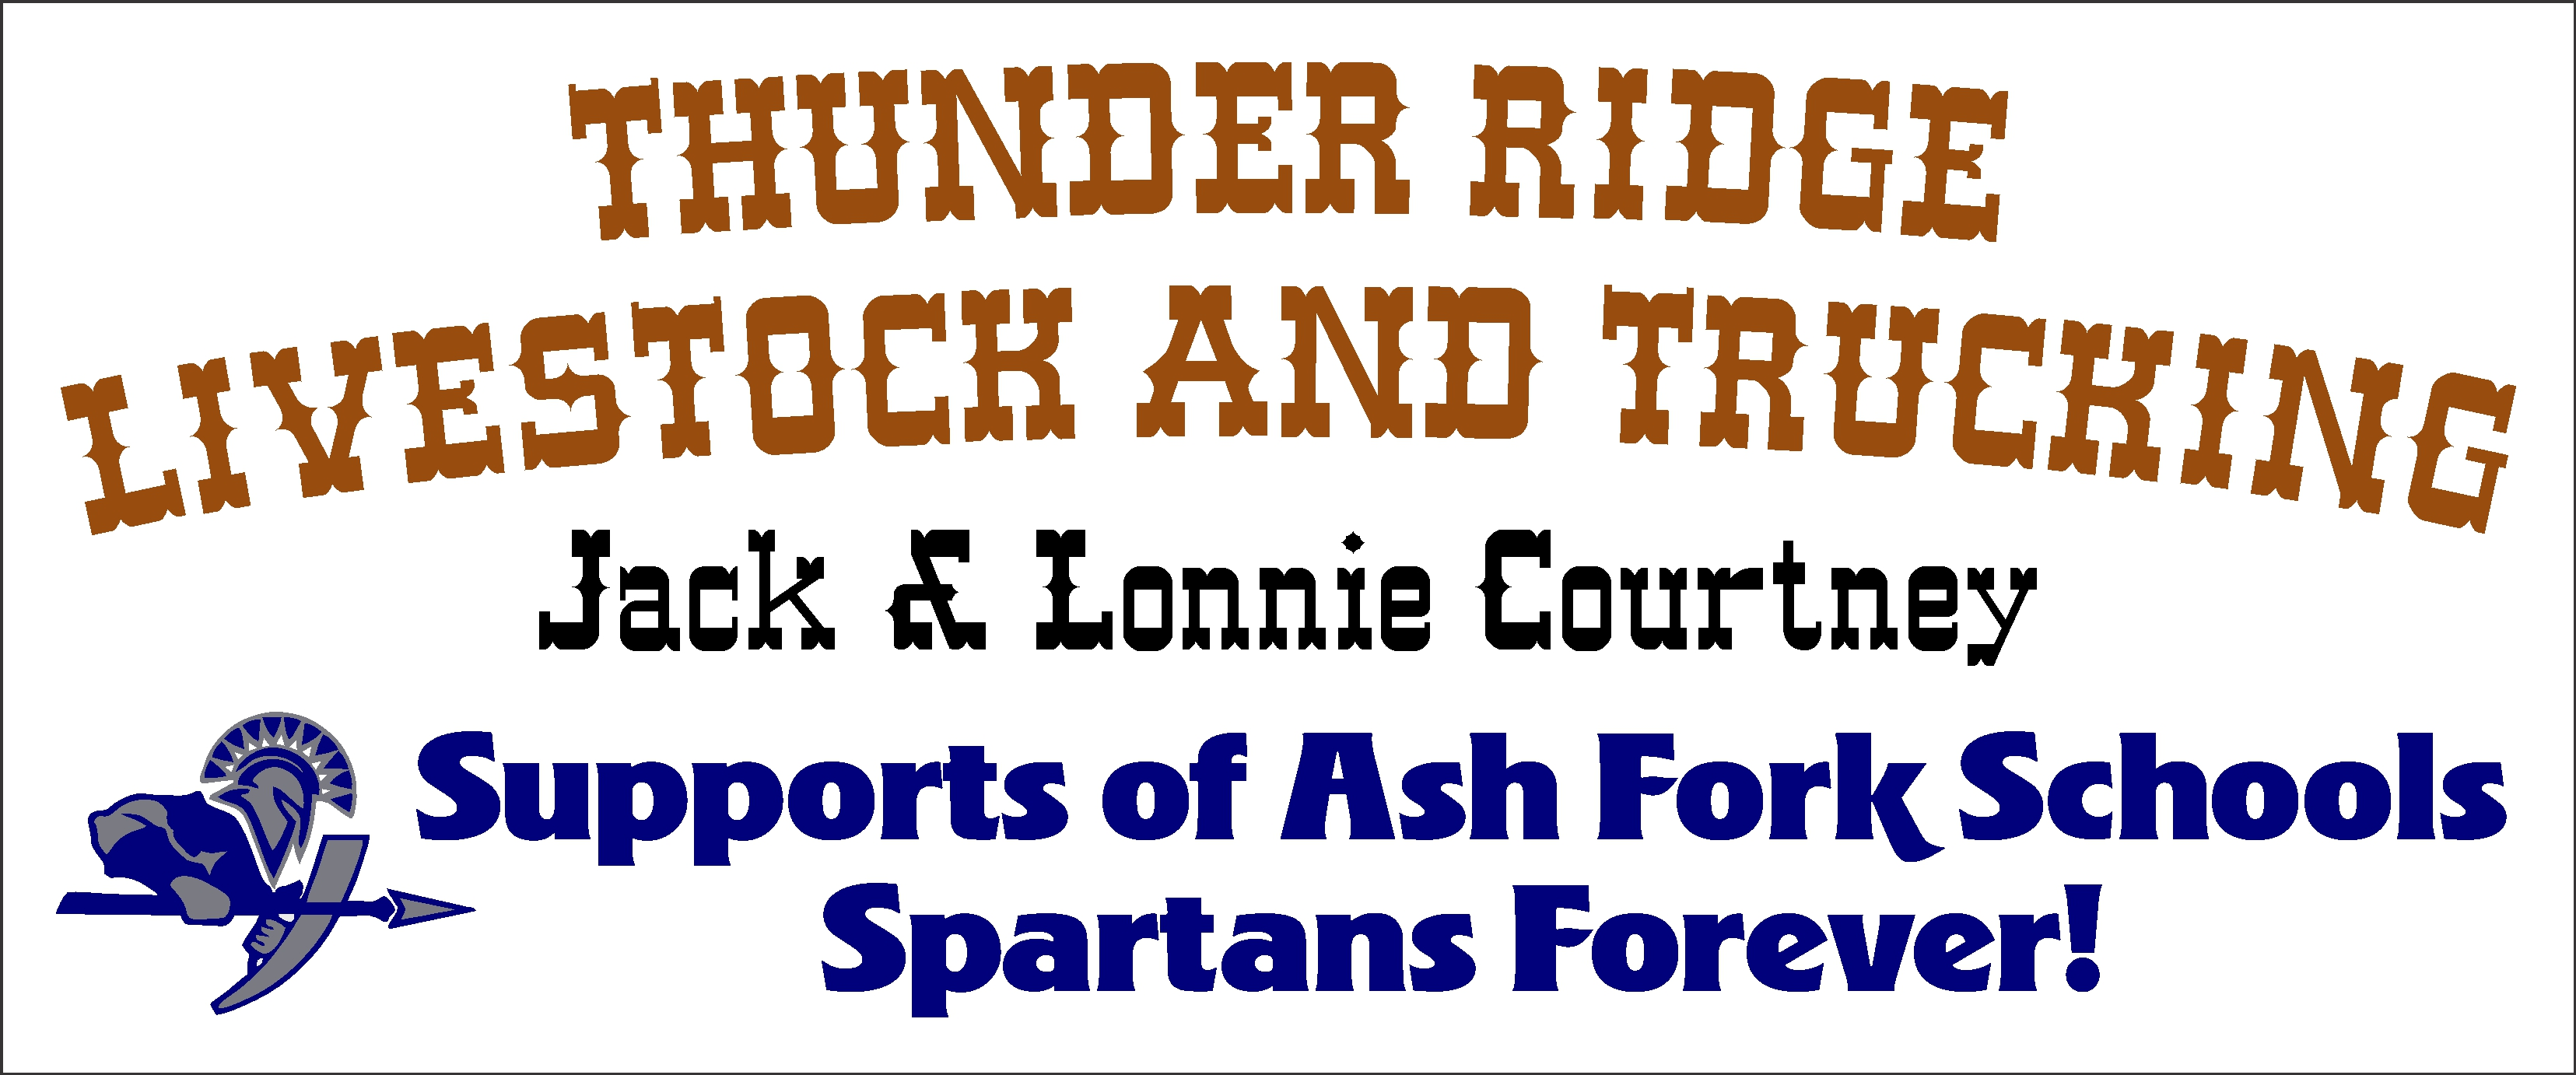 1528300205-thunder_ridge_livestock_and_trucking_banner